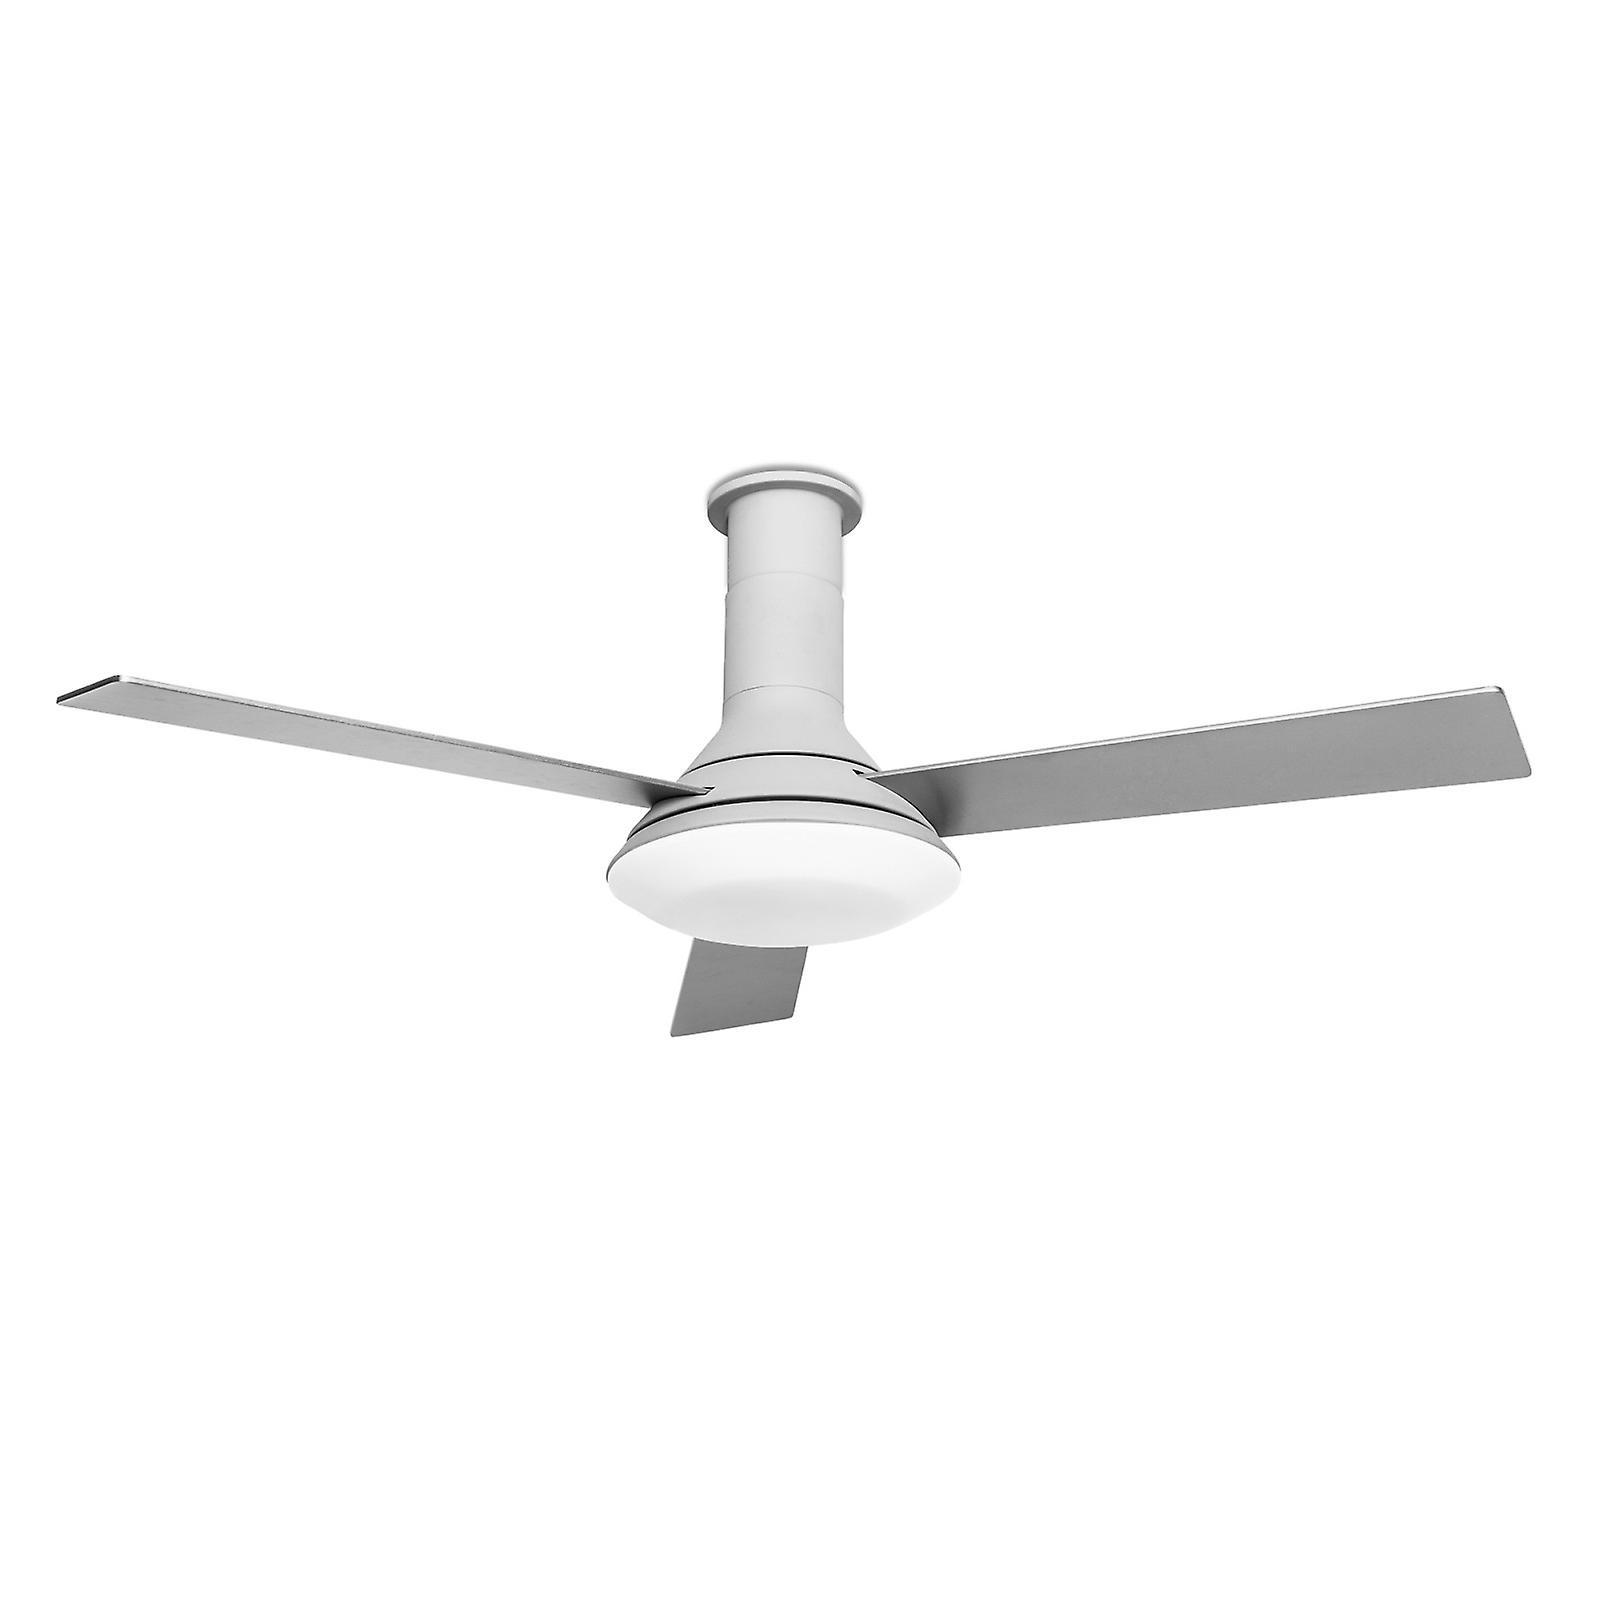 Ceiling fan FUS with LED and Remote 132 cm   52& 034;